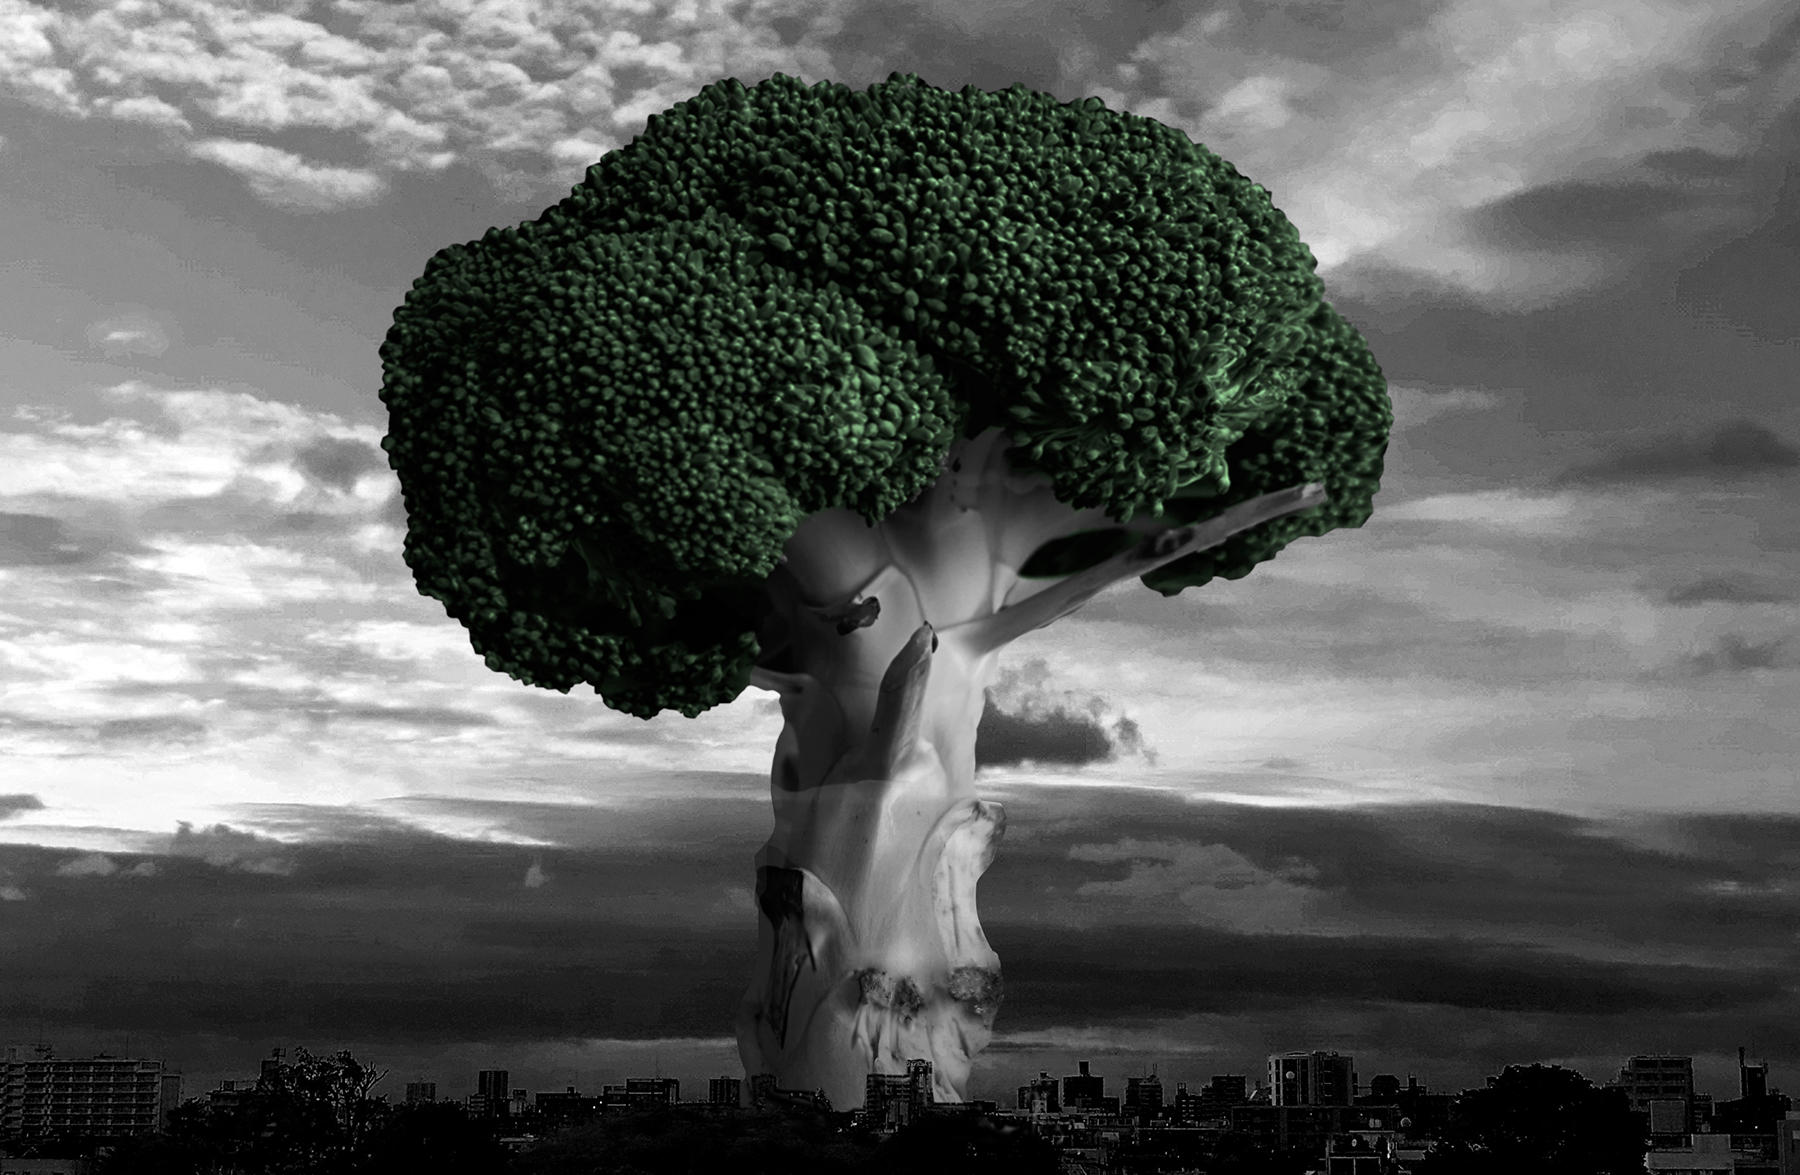 Broccoli's dream